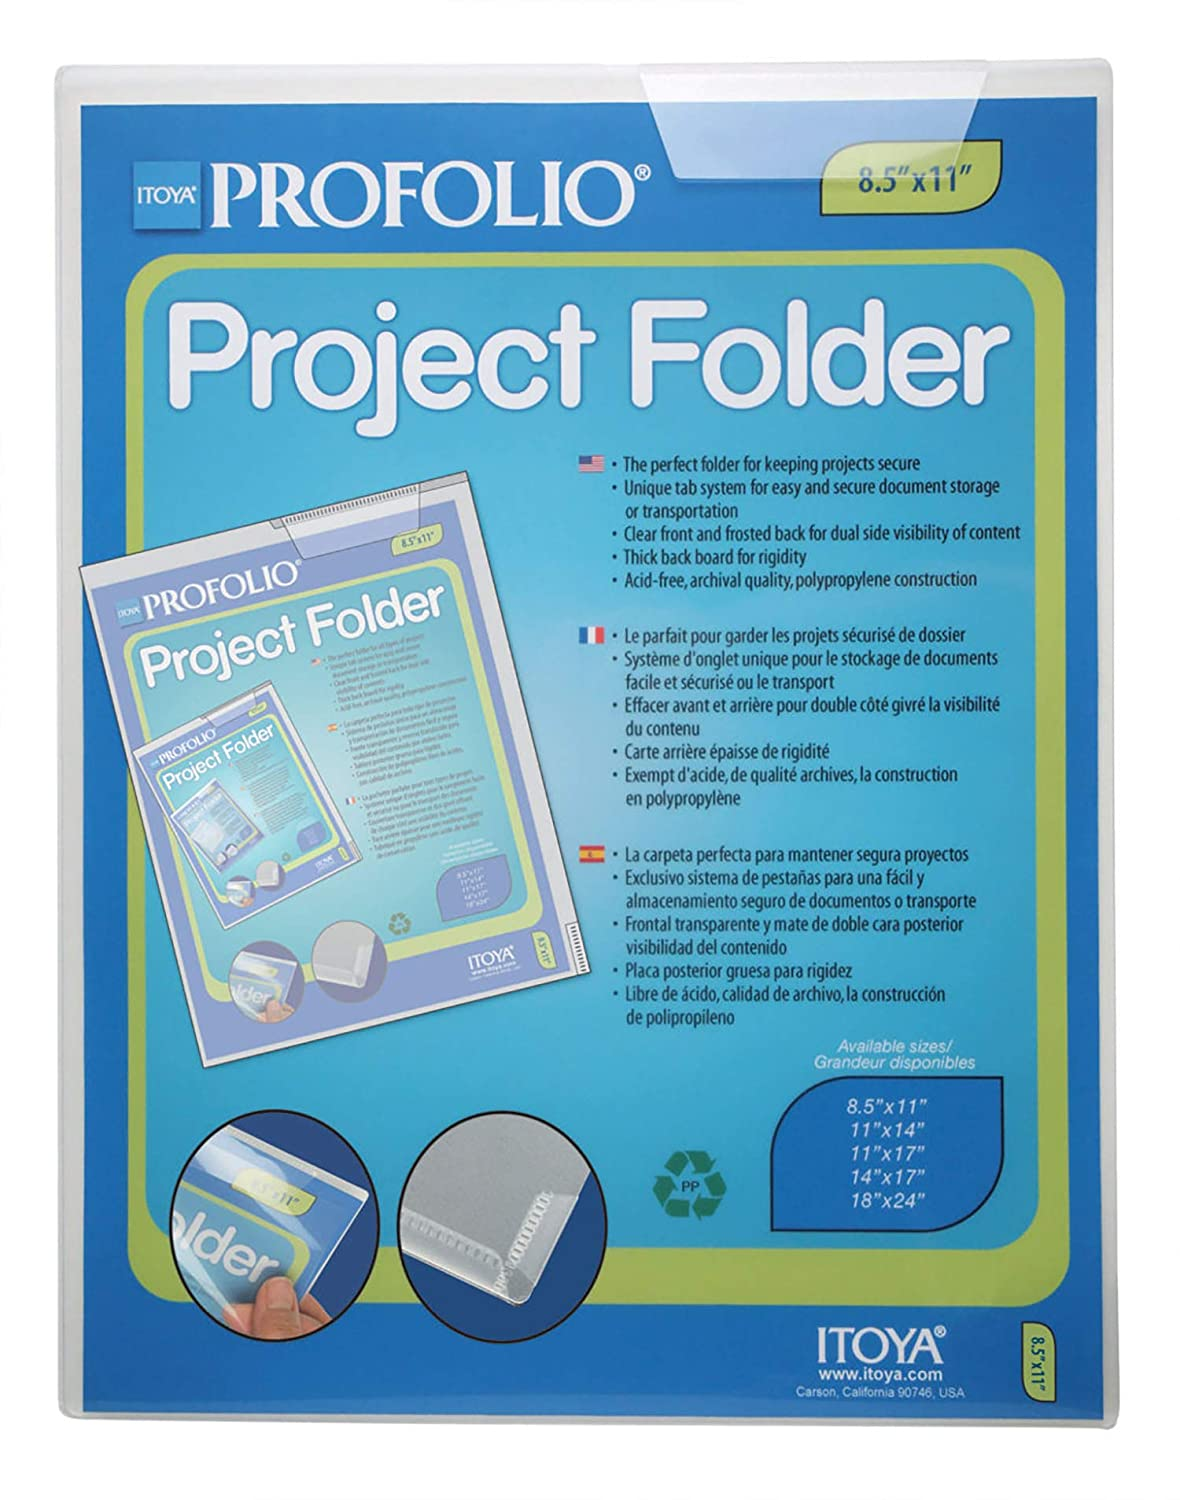 Project Folder ProFolio by Itoya 18 x 24 Inches